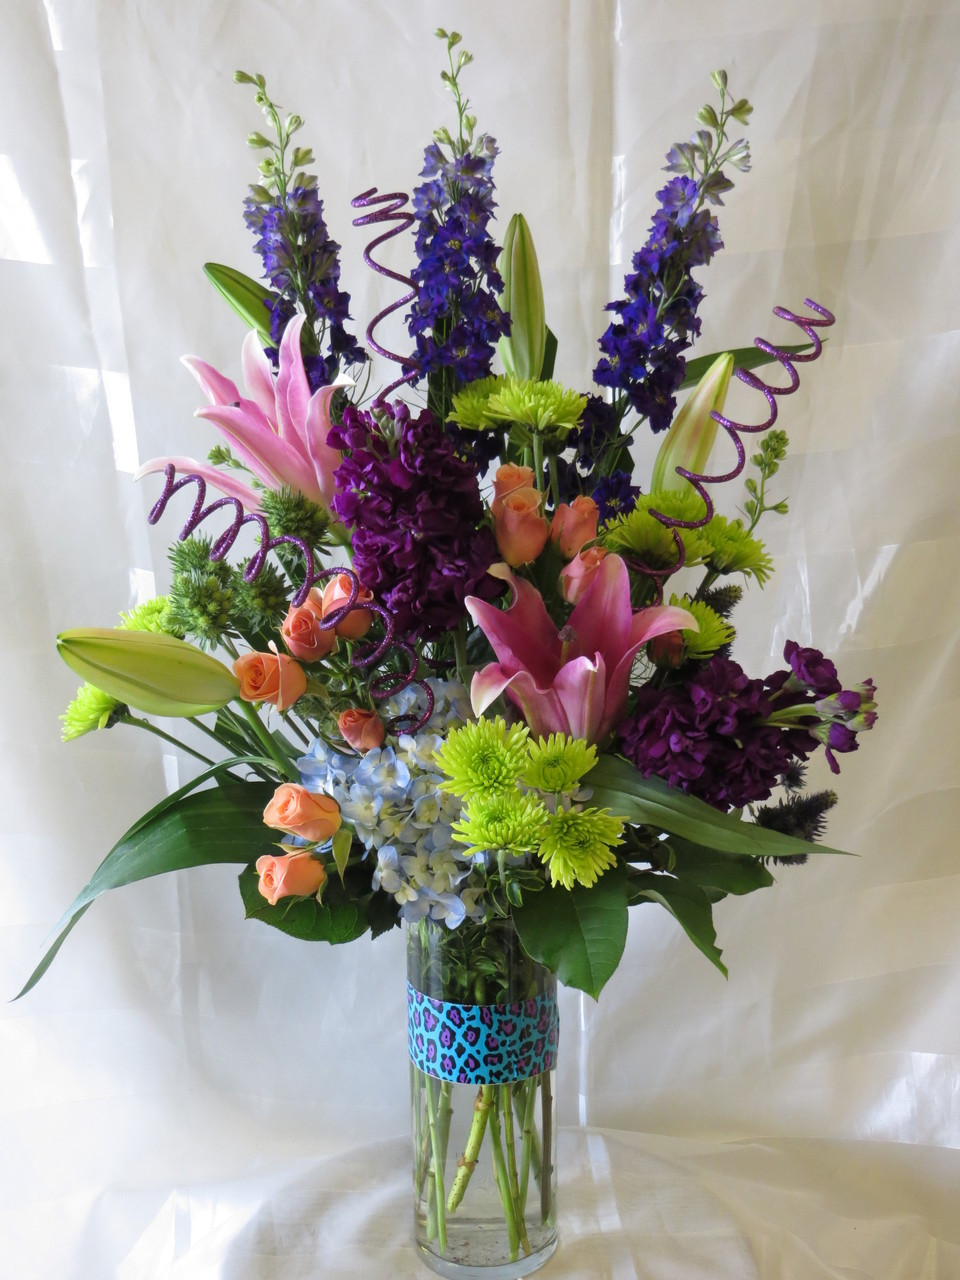 Enchanteds pasadena florist 832850 7677 flower delivery tx 77504 tiffany purple lily flower arrangement by enchanted florist deer park flowers delivered today in classic all dhlflorist Image collections